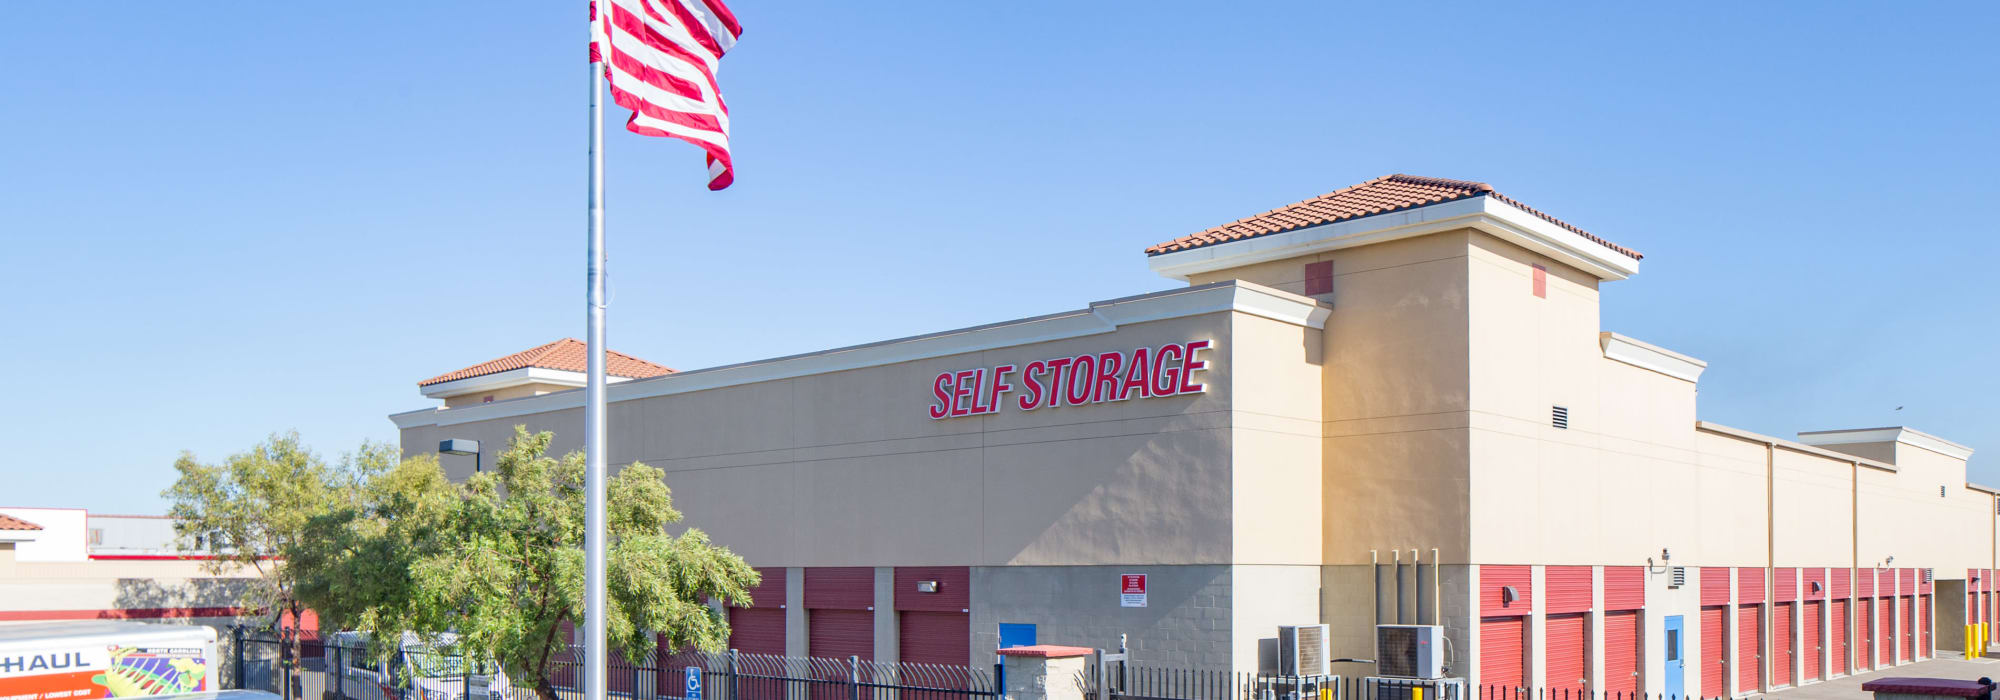 Self storage at Trojan Storage in Roseville California